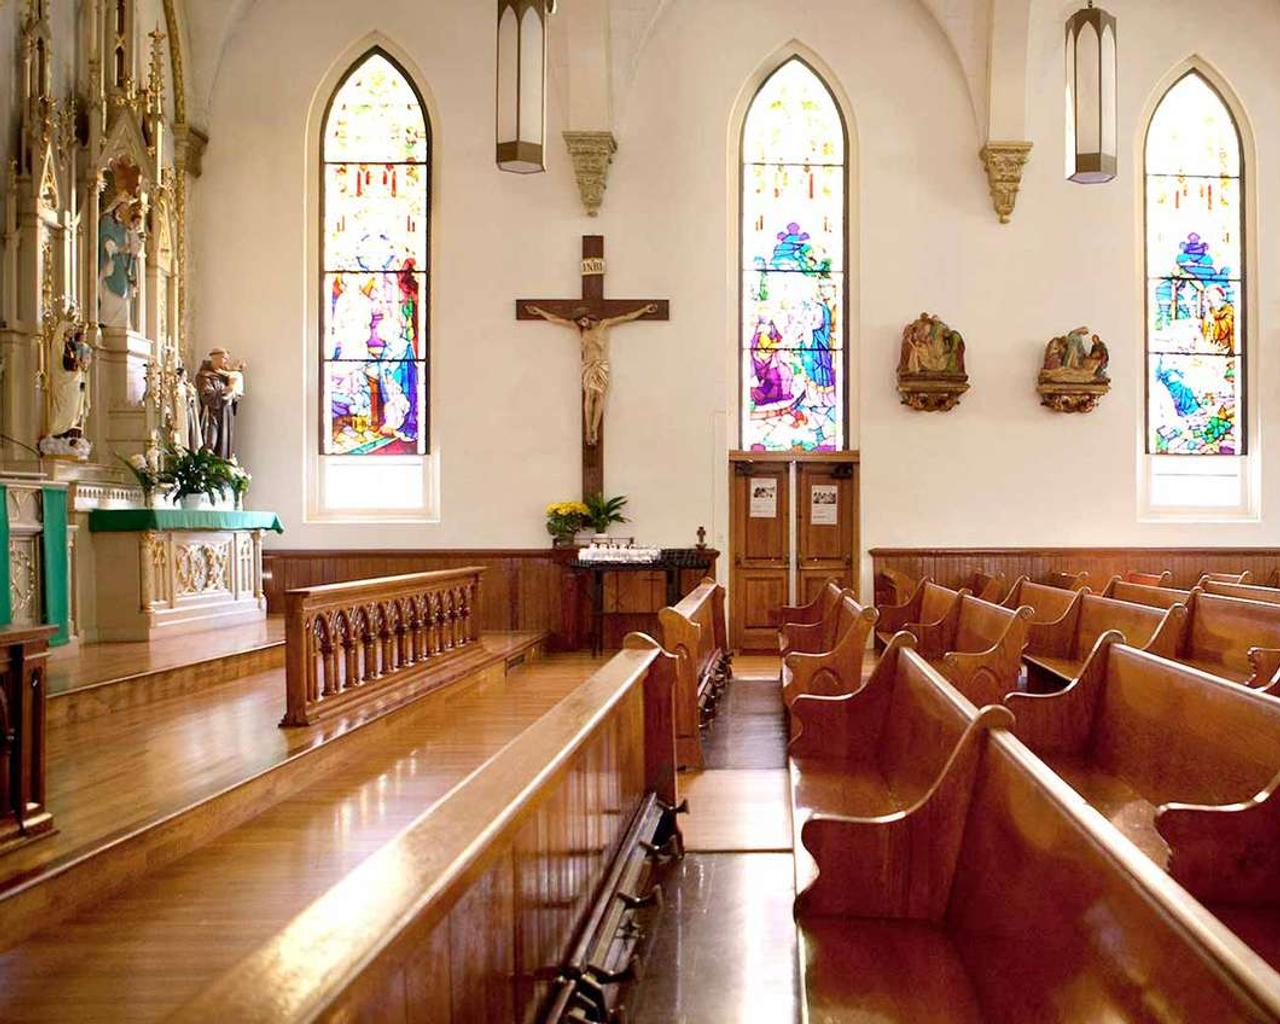 Easter in the time of Covid: America's congregation rates are at their lowest in history.